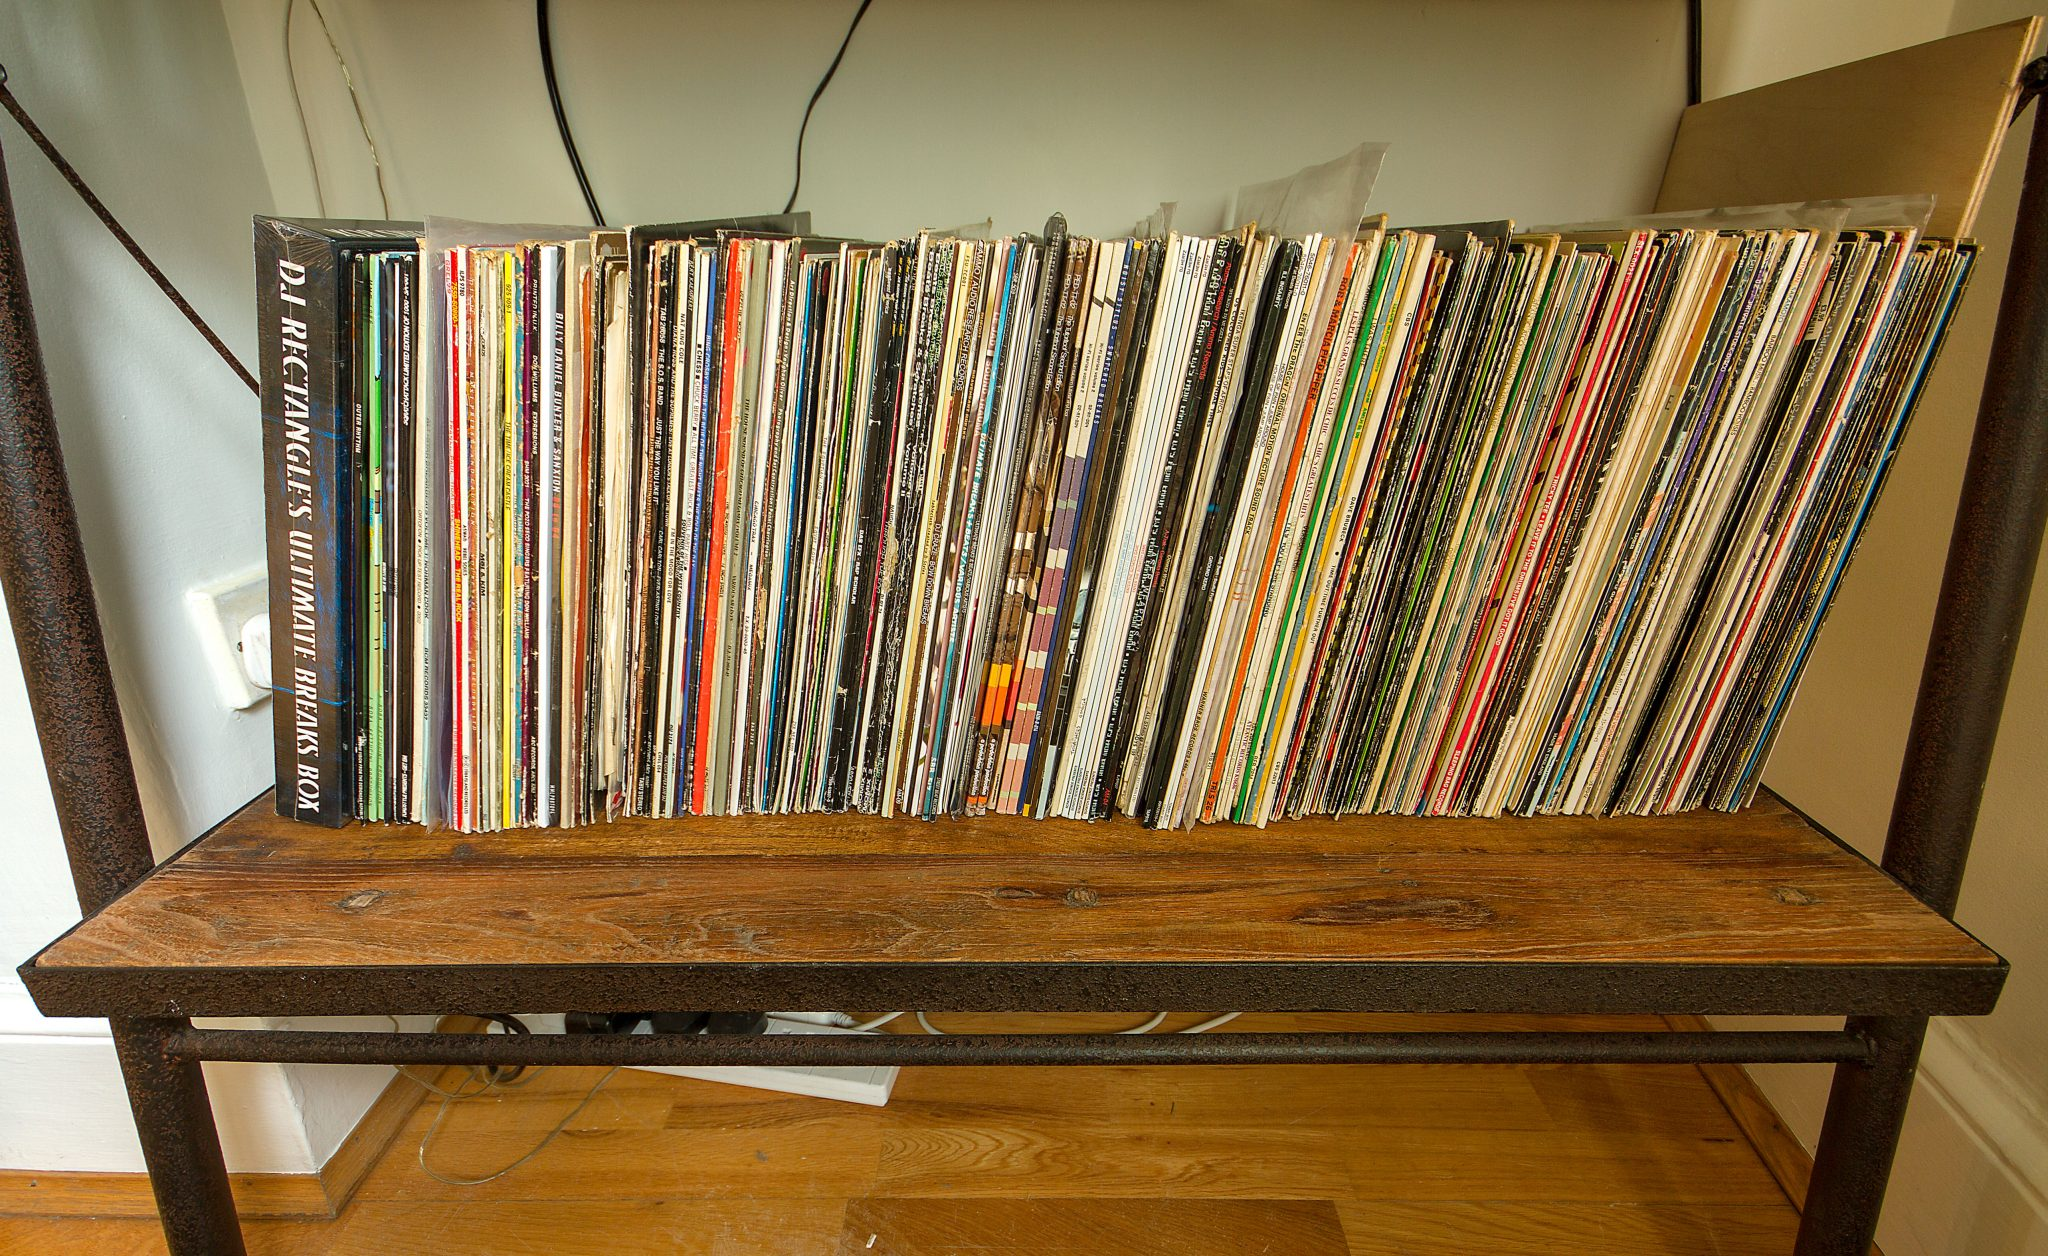 ENVIRONMENT: Does vinyl really need to be plastic shrink-wrapped? 6